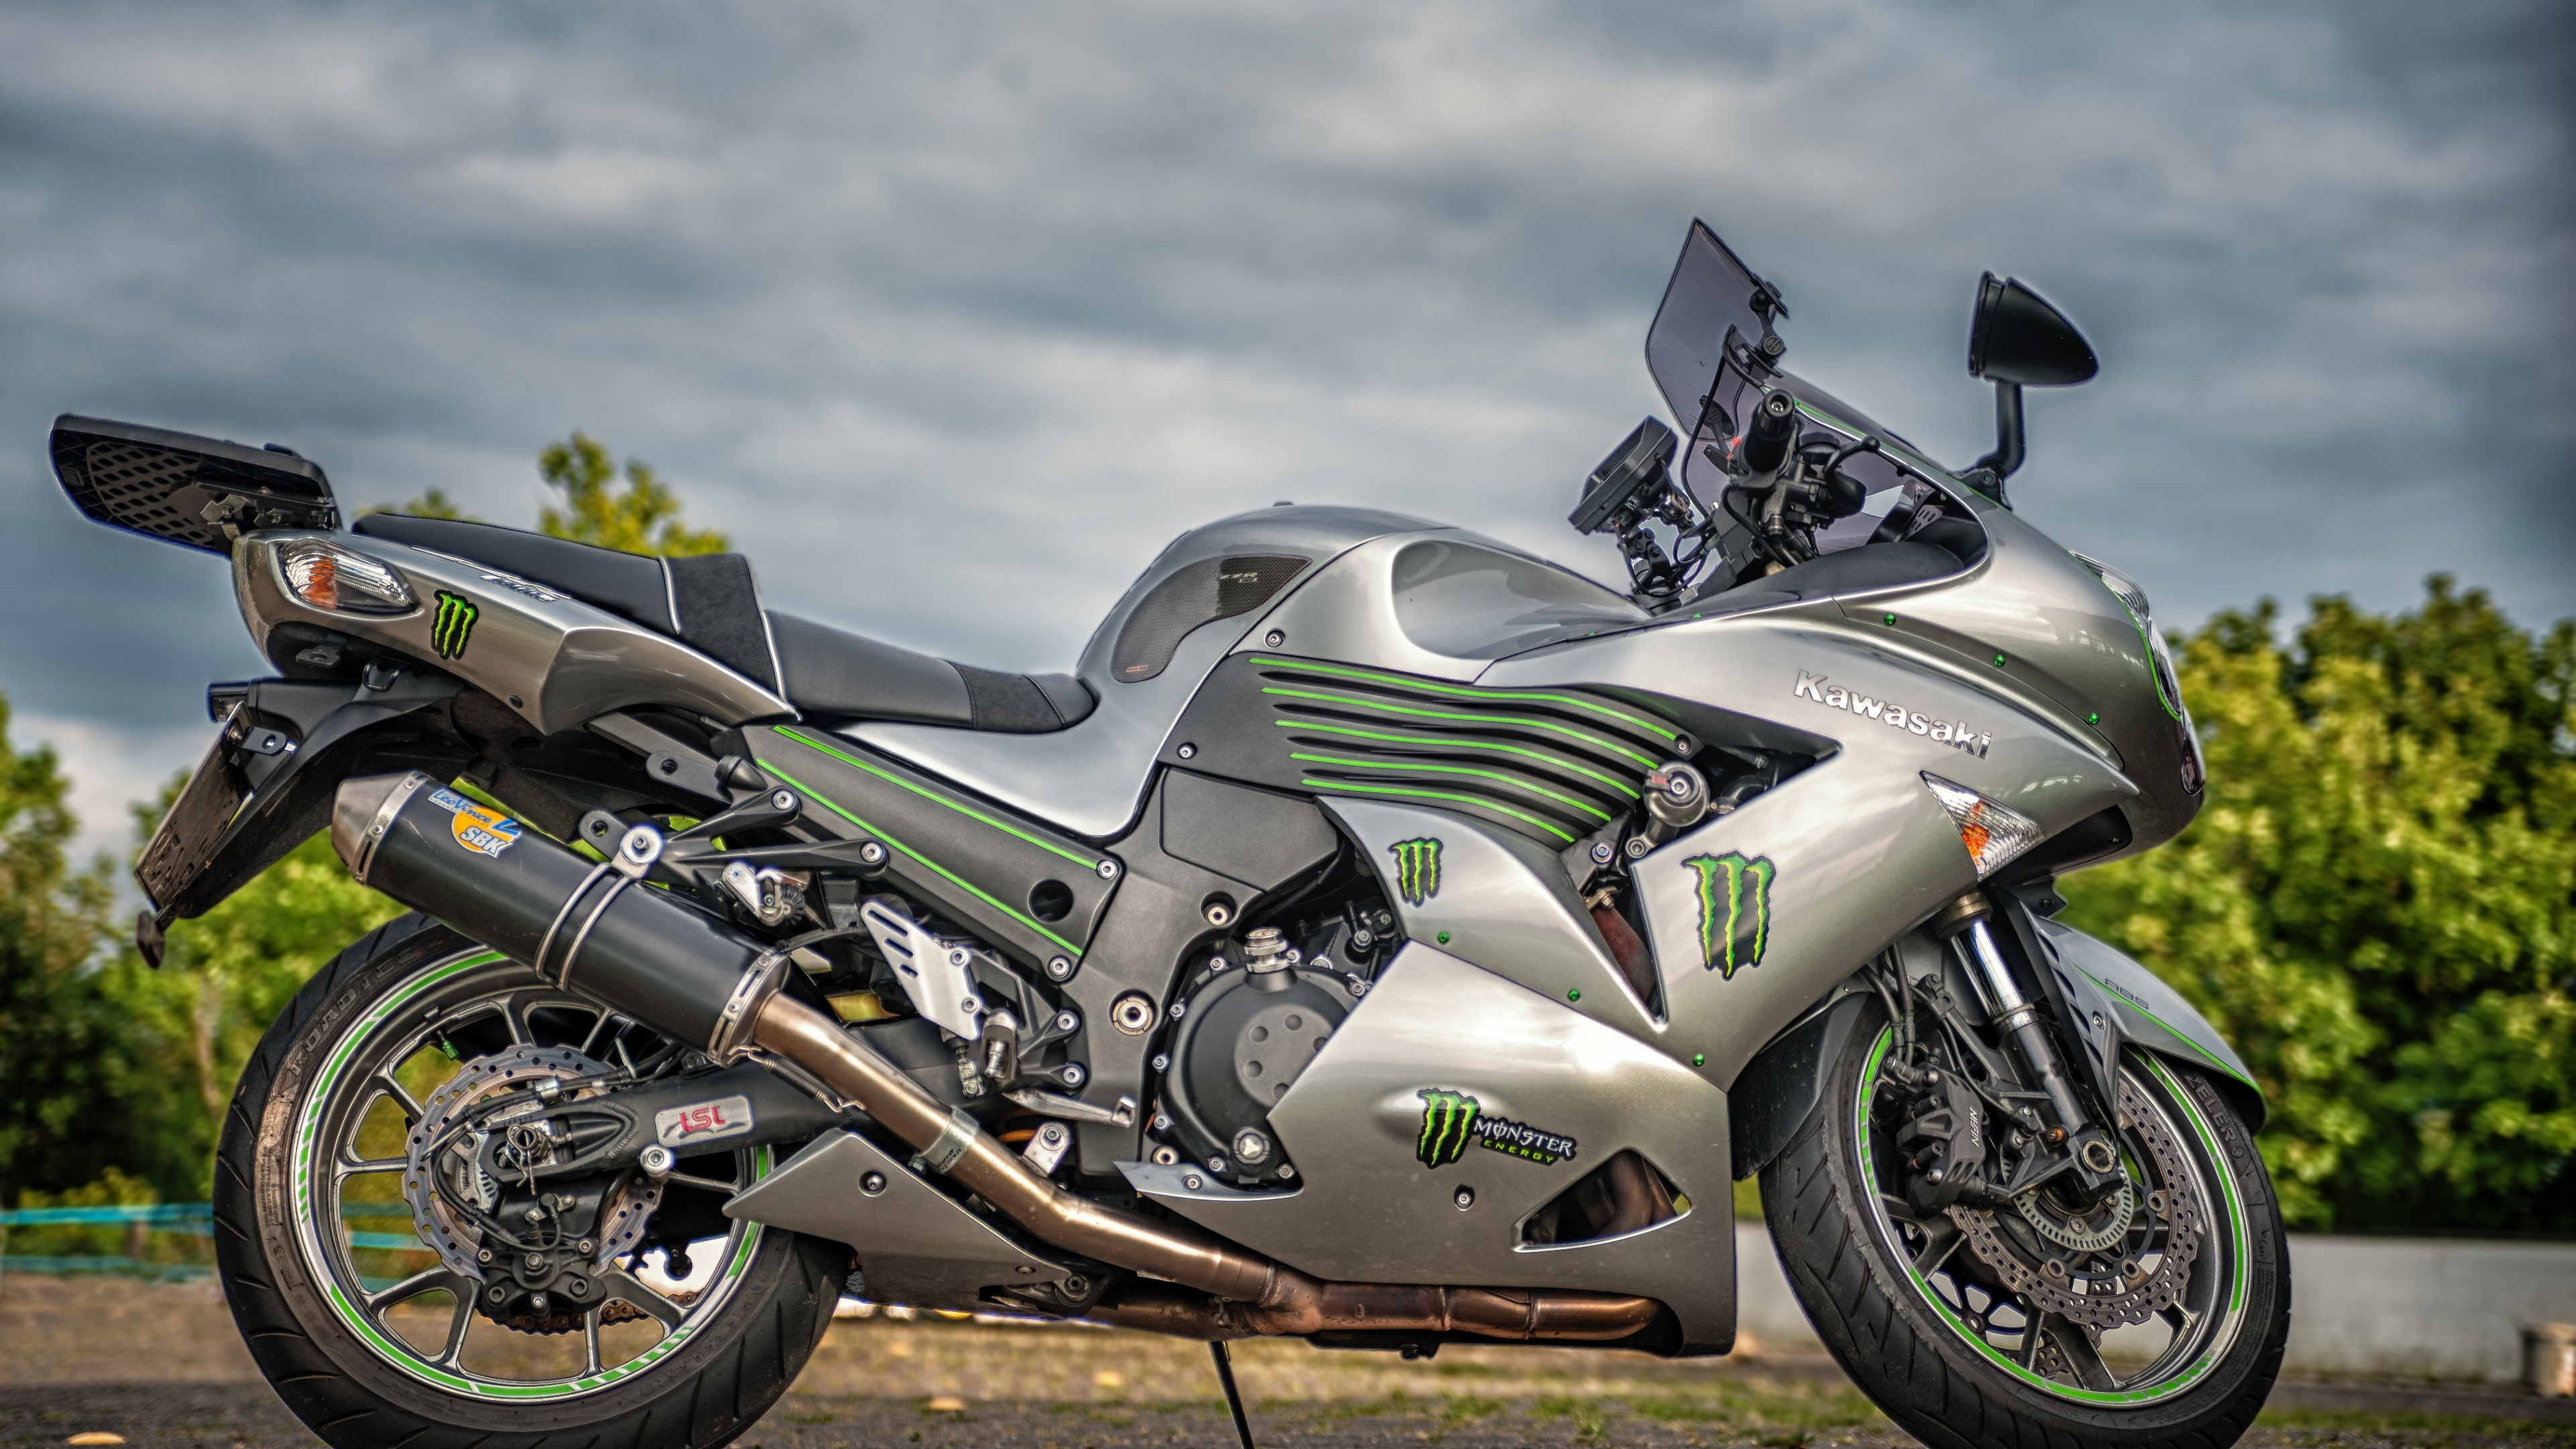 Wallpaper Hd The Best Download Wallpaper Kawasaki Zzr1400 3840x2160